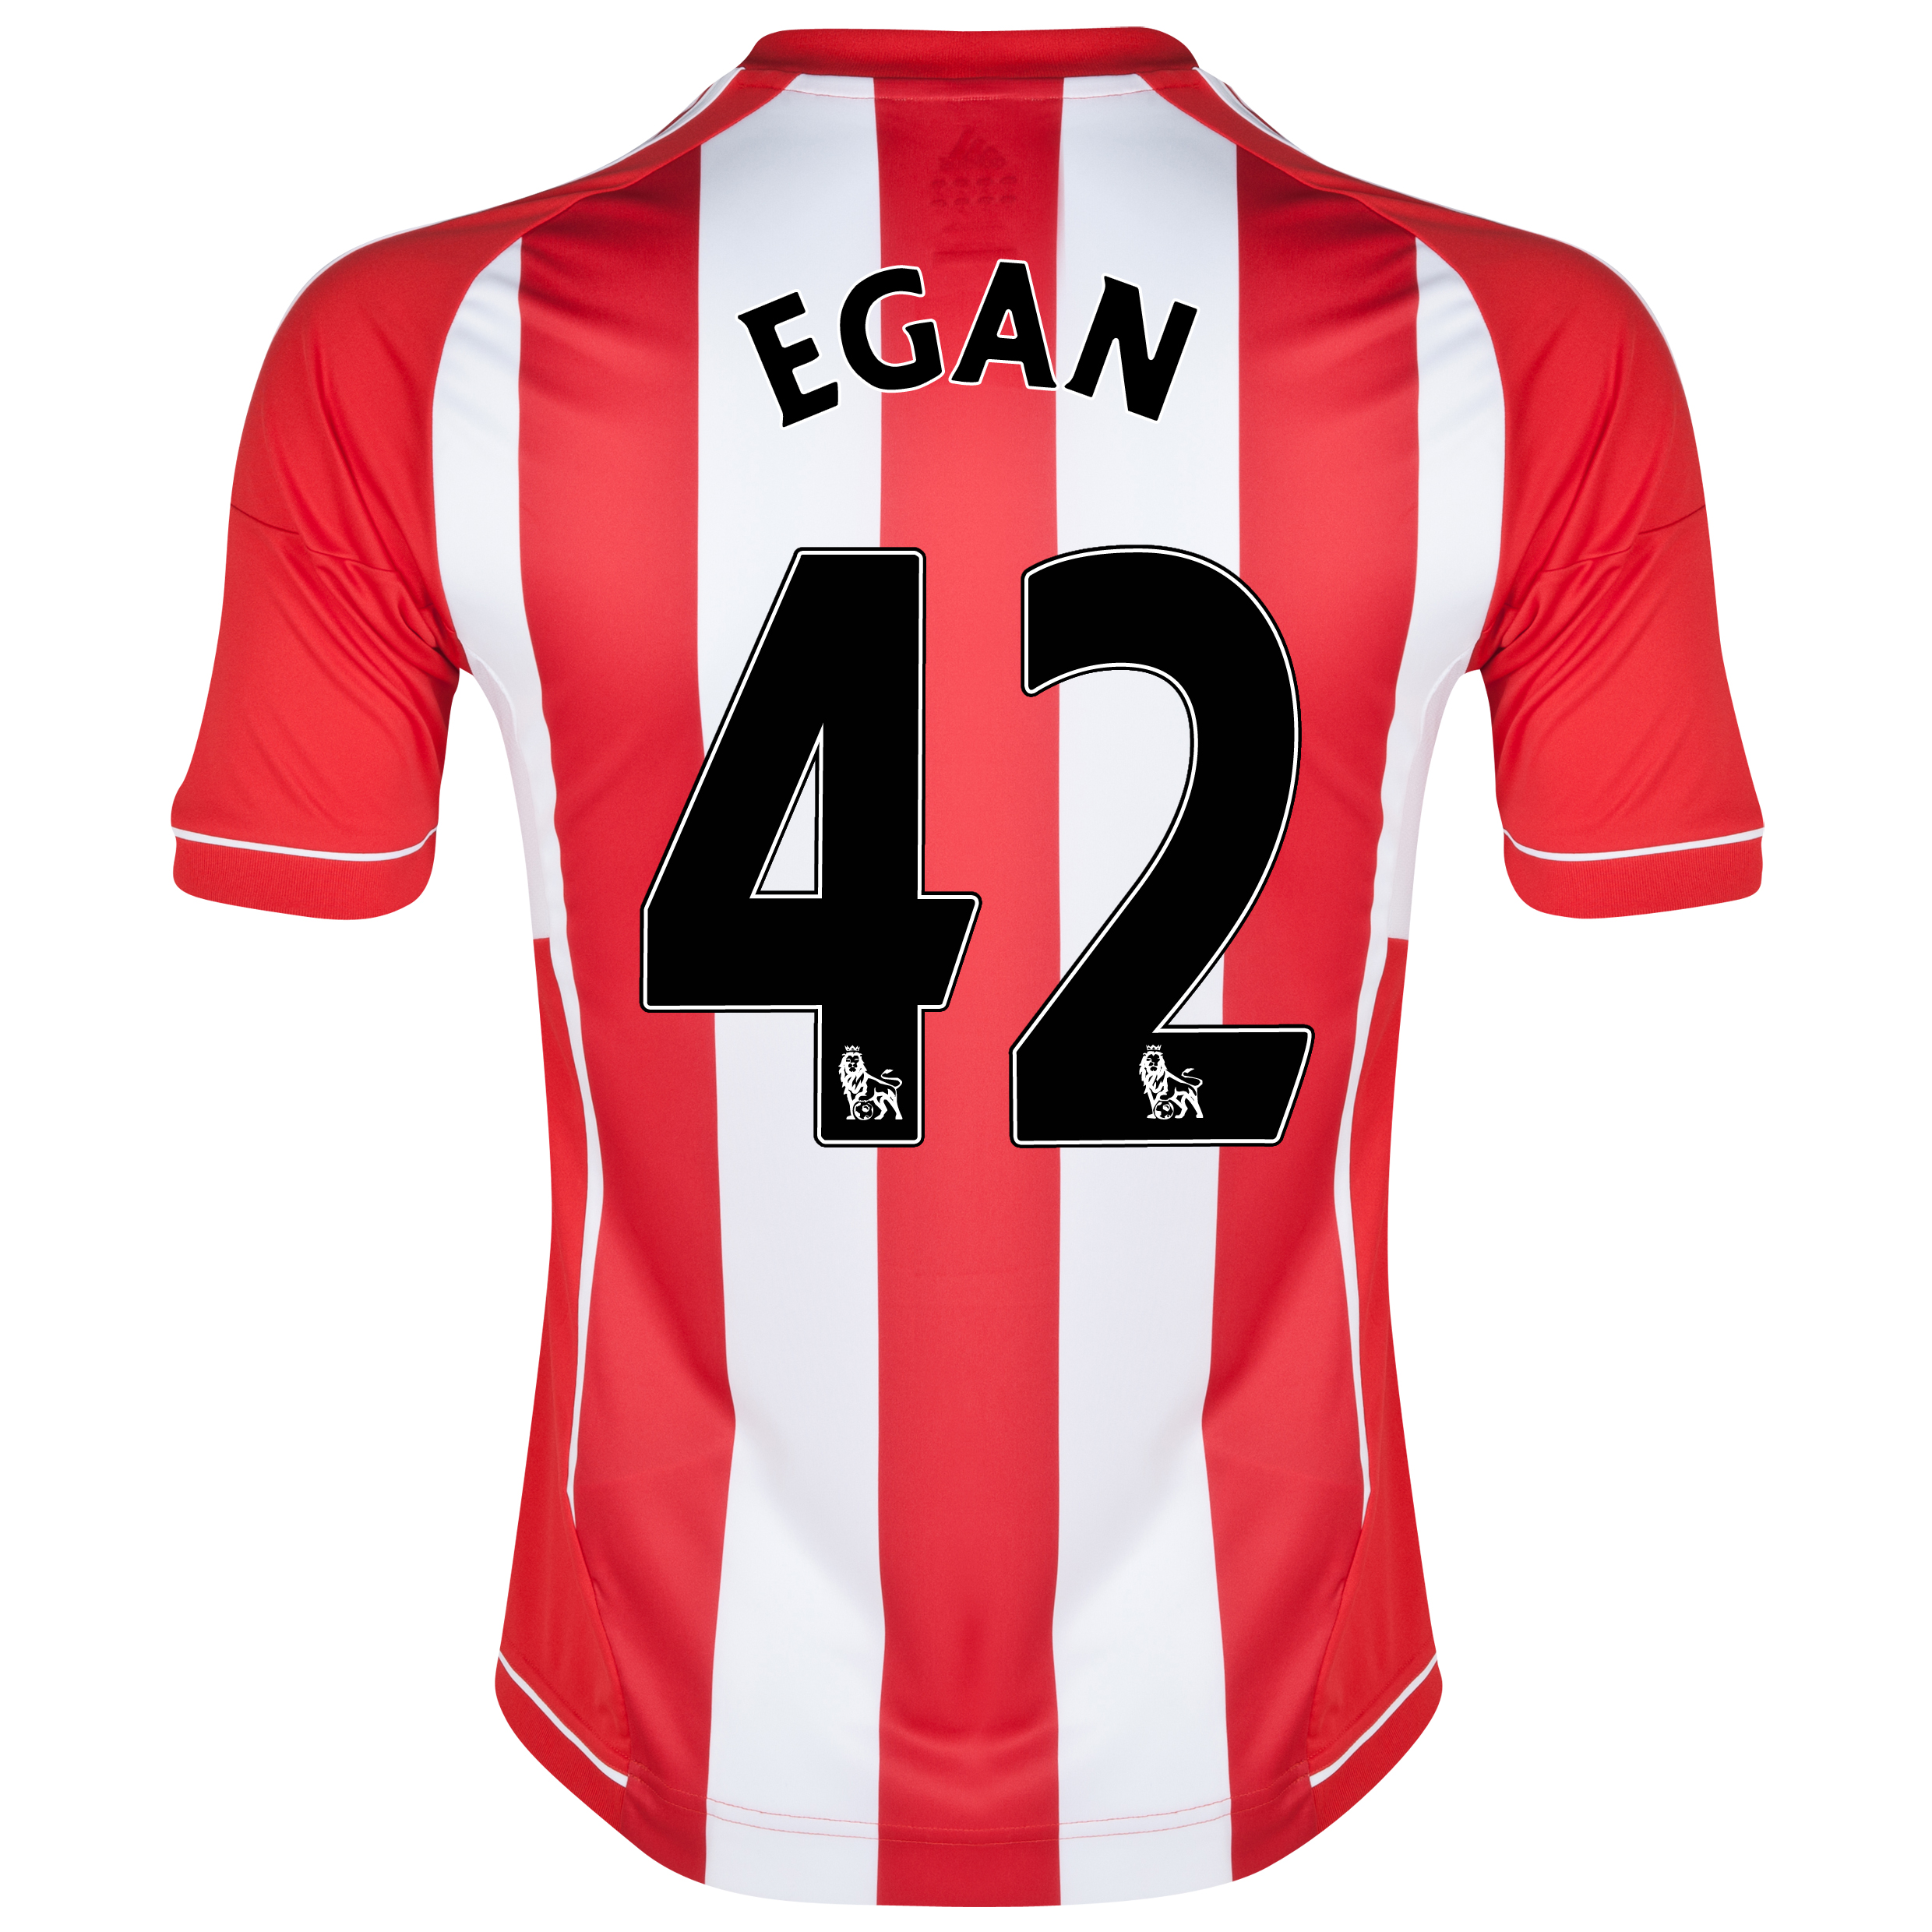 Sunderland Home Shirt 2012/13 - Junior with Egan 42 printing